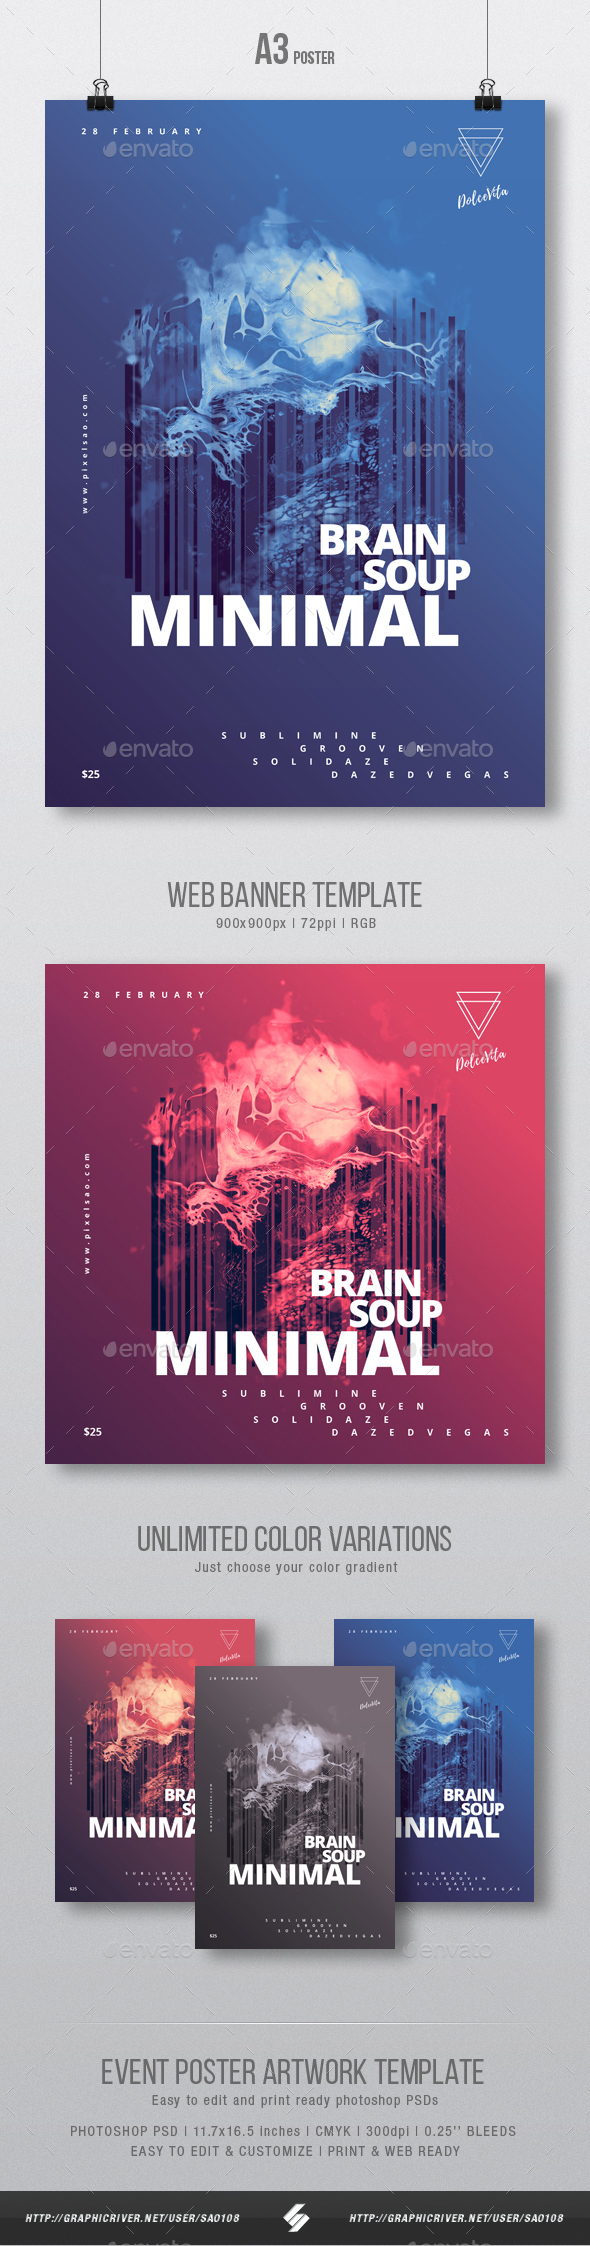 Brain Soup - Minimal Party Flyer / Poster Artwork Template A3 - Clubs & Parties Events